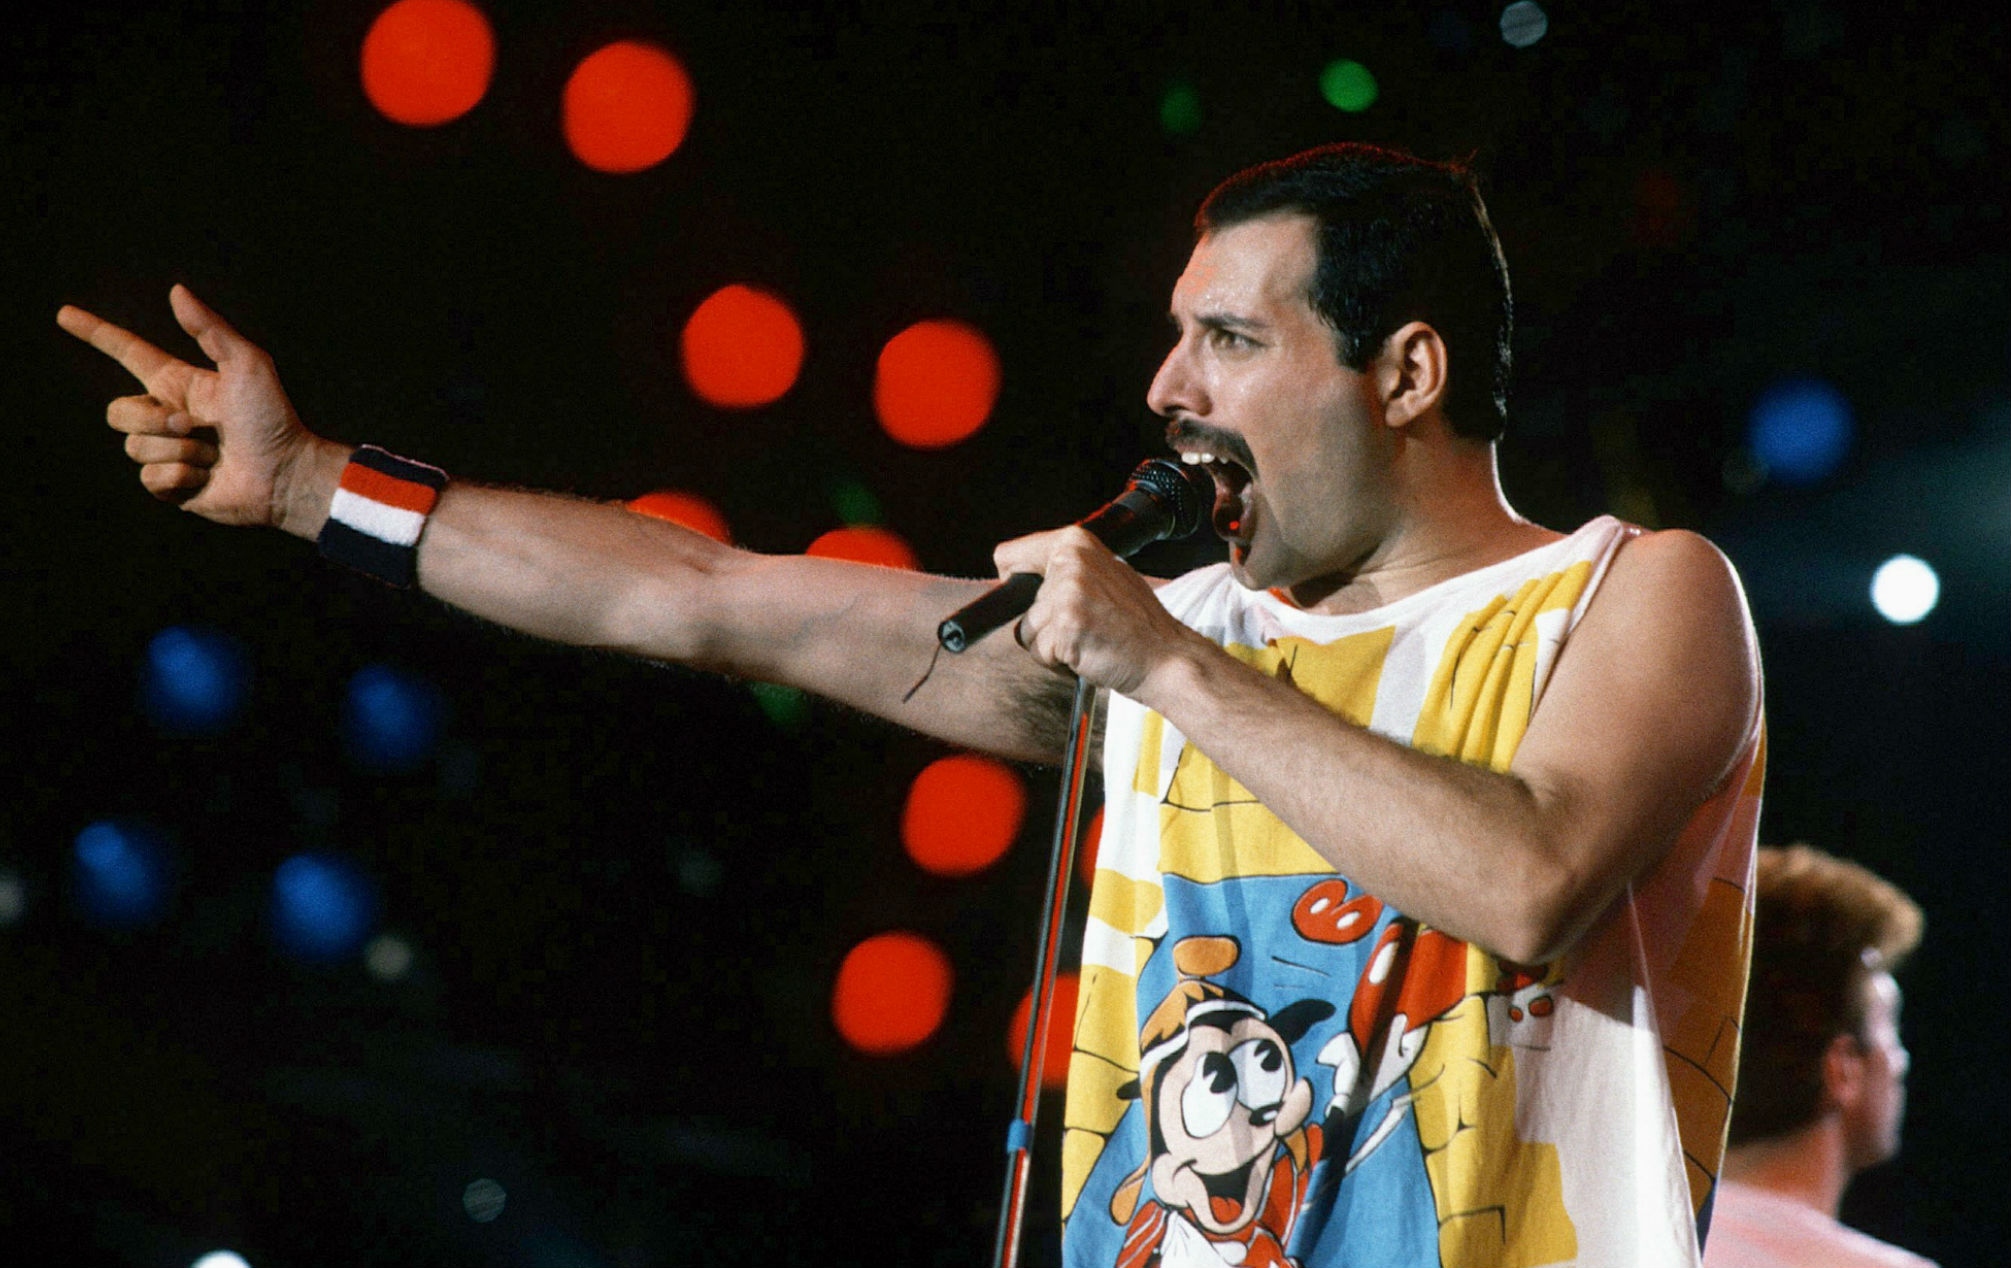 queen launch new app which allows allows fans to sing just like freddie mercury sing just like freddie mercury